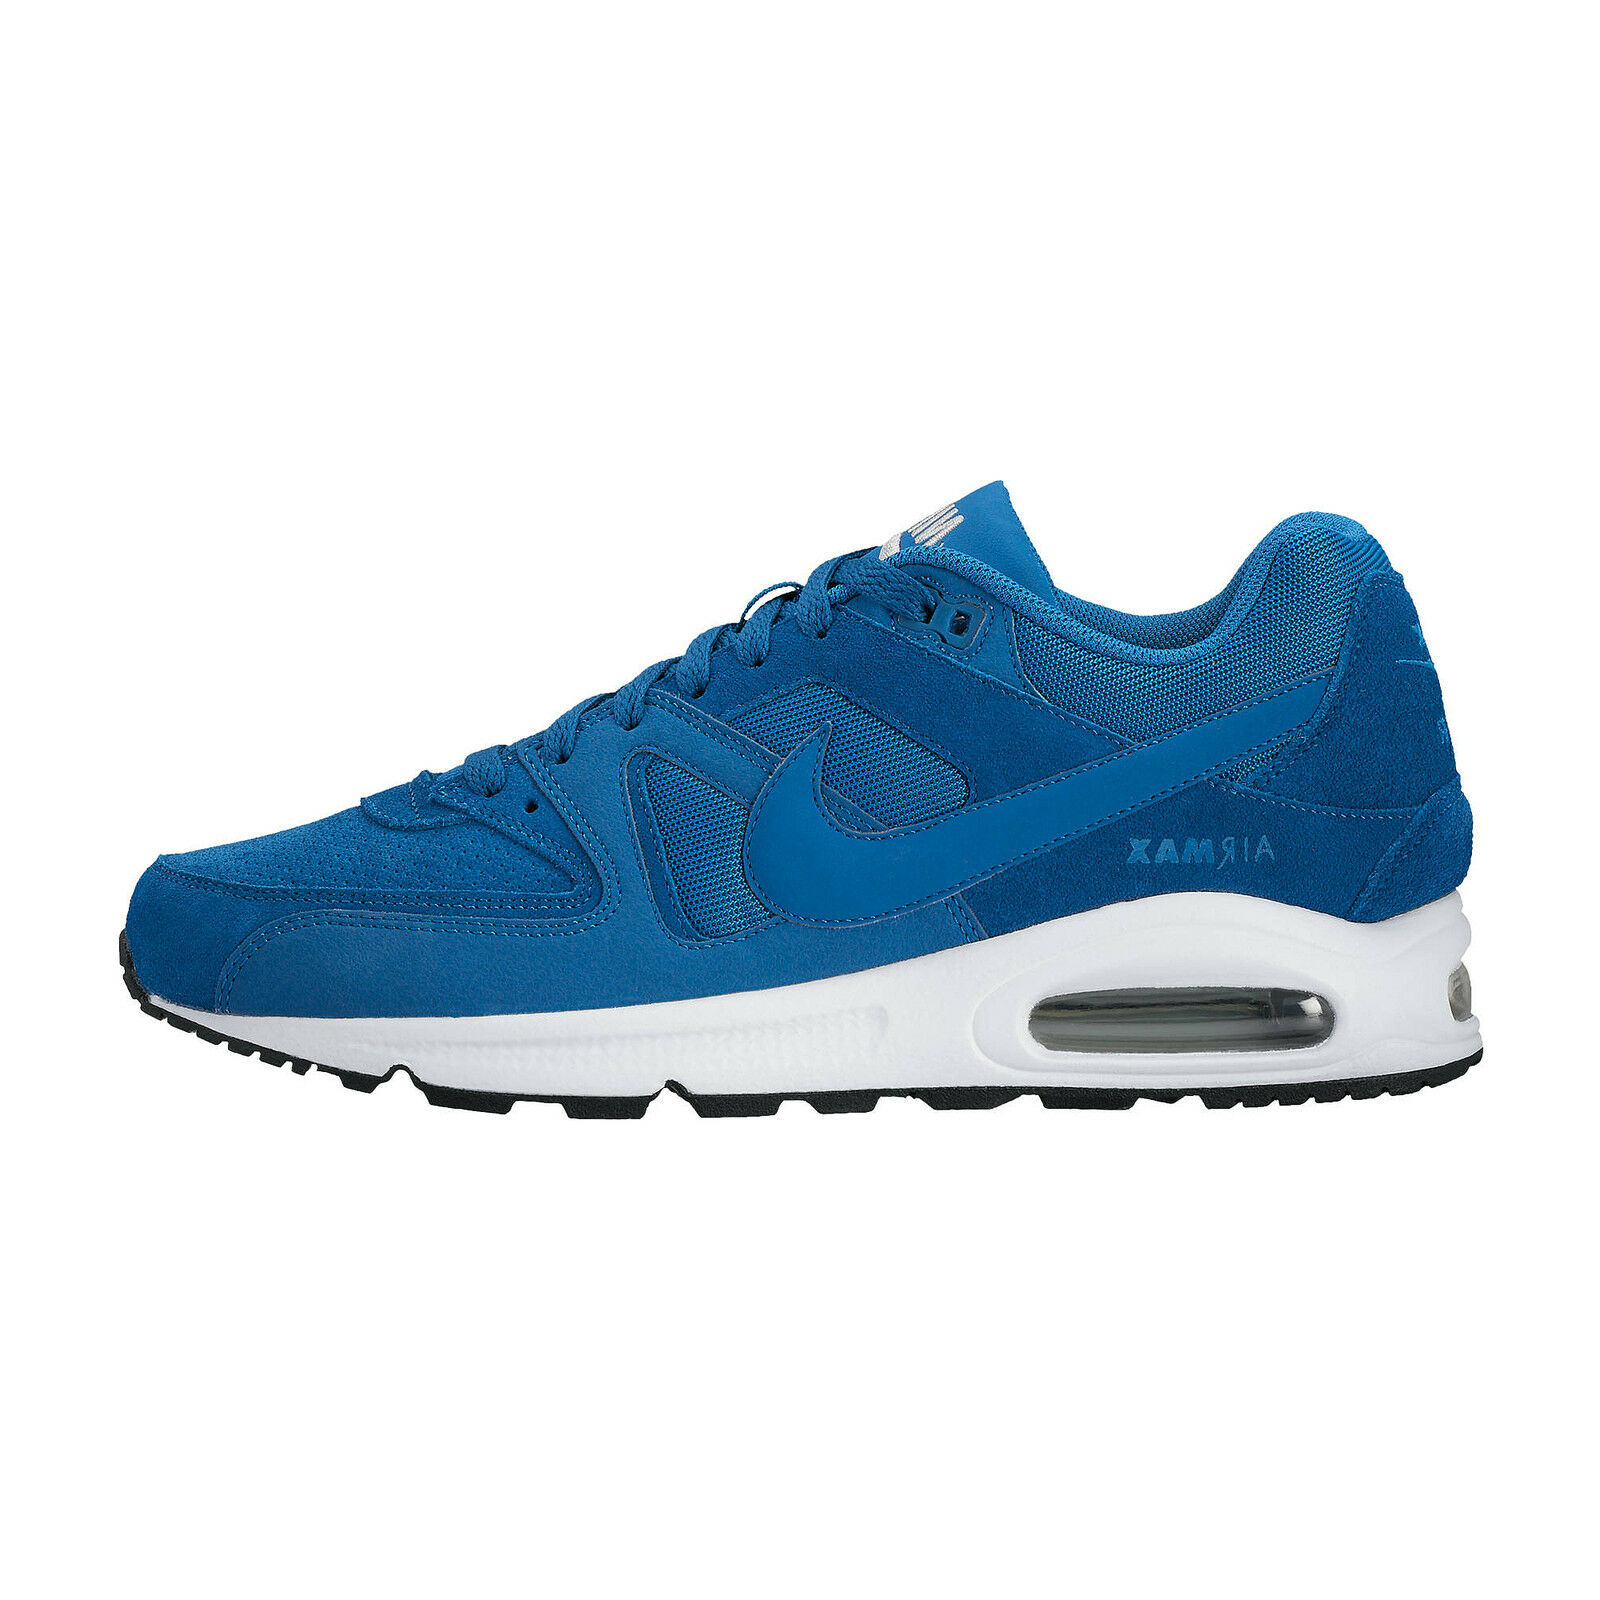 on sale 7c290 4f089 ... cargando zoom. d5af5 3b833  coupon nike air max command prm 694862 404  shoes casual eur 47. about this product